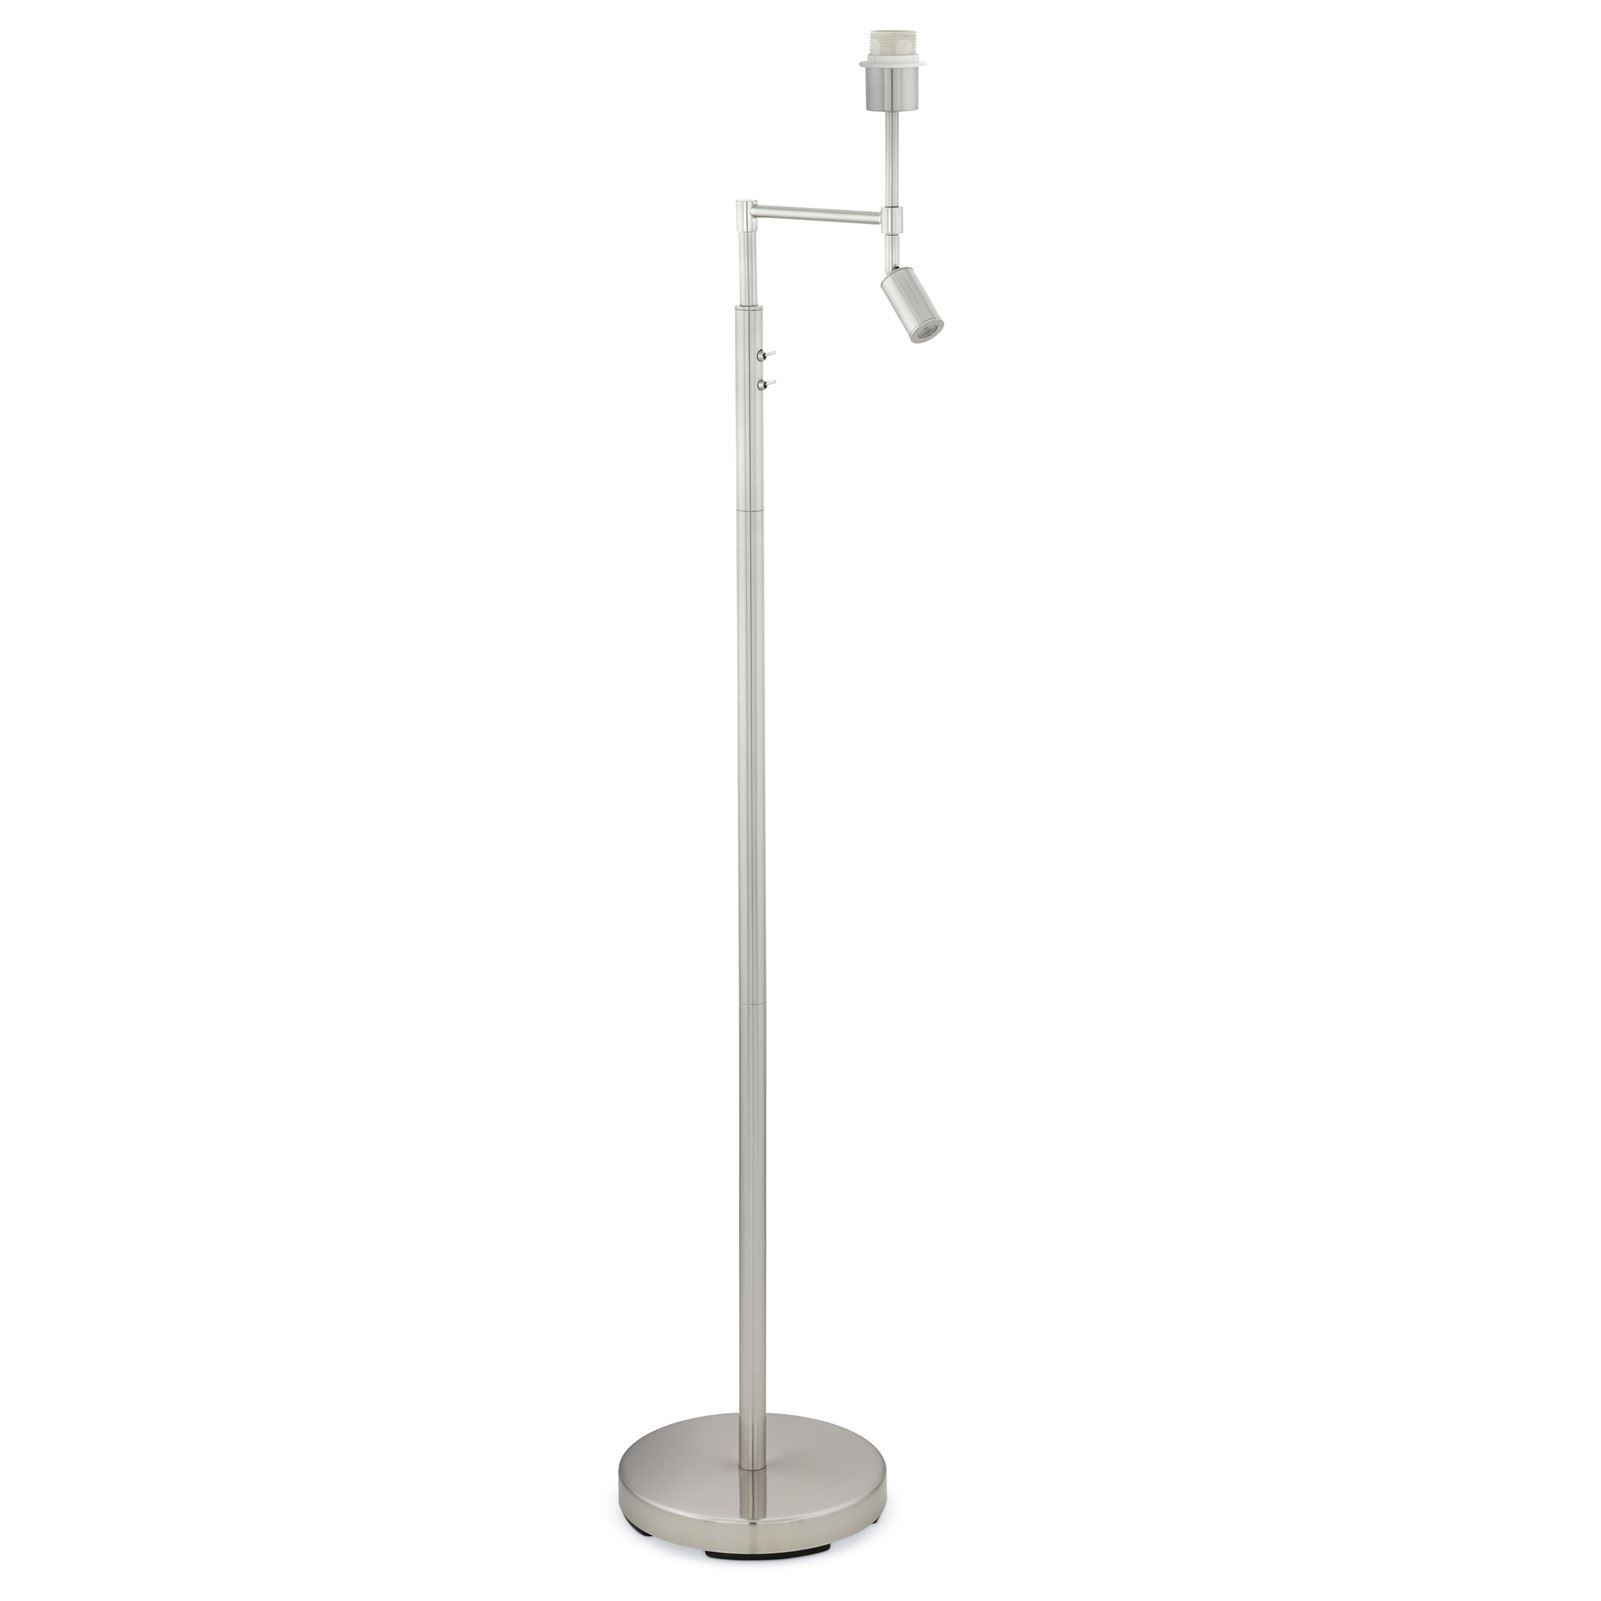 Berson Modern Steel Floor Lamp Satin Nickel 5 Years Warranty